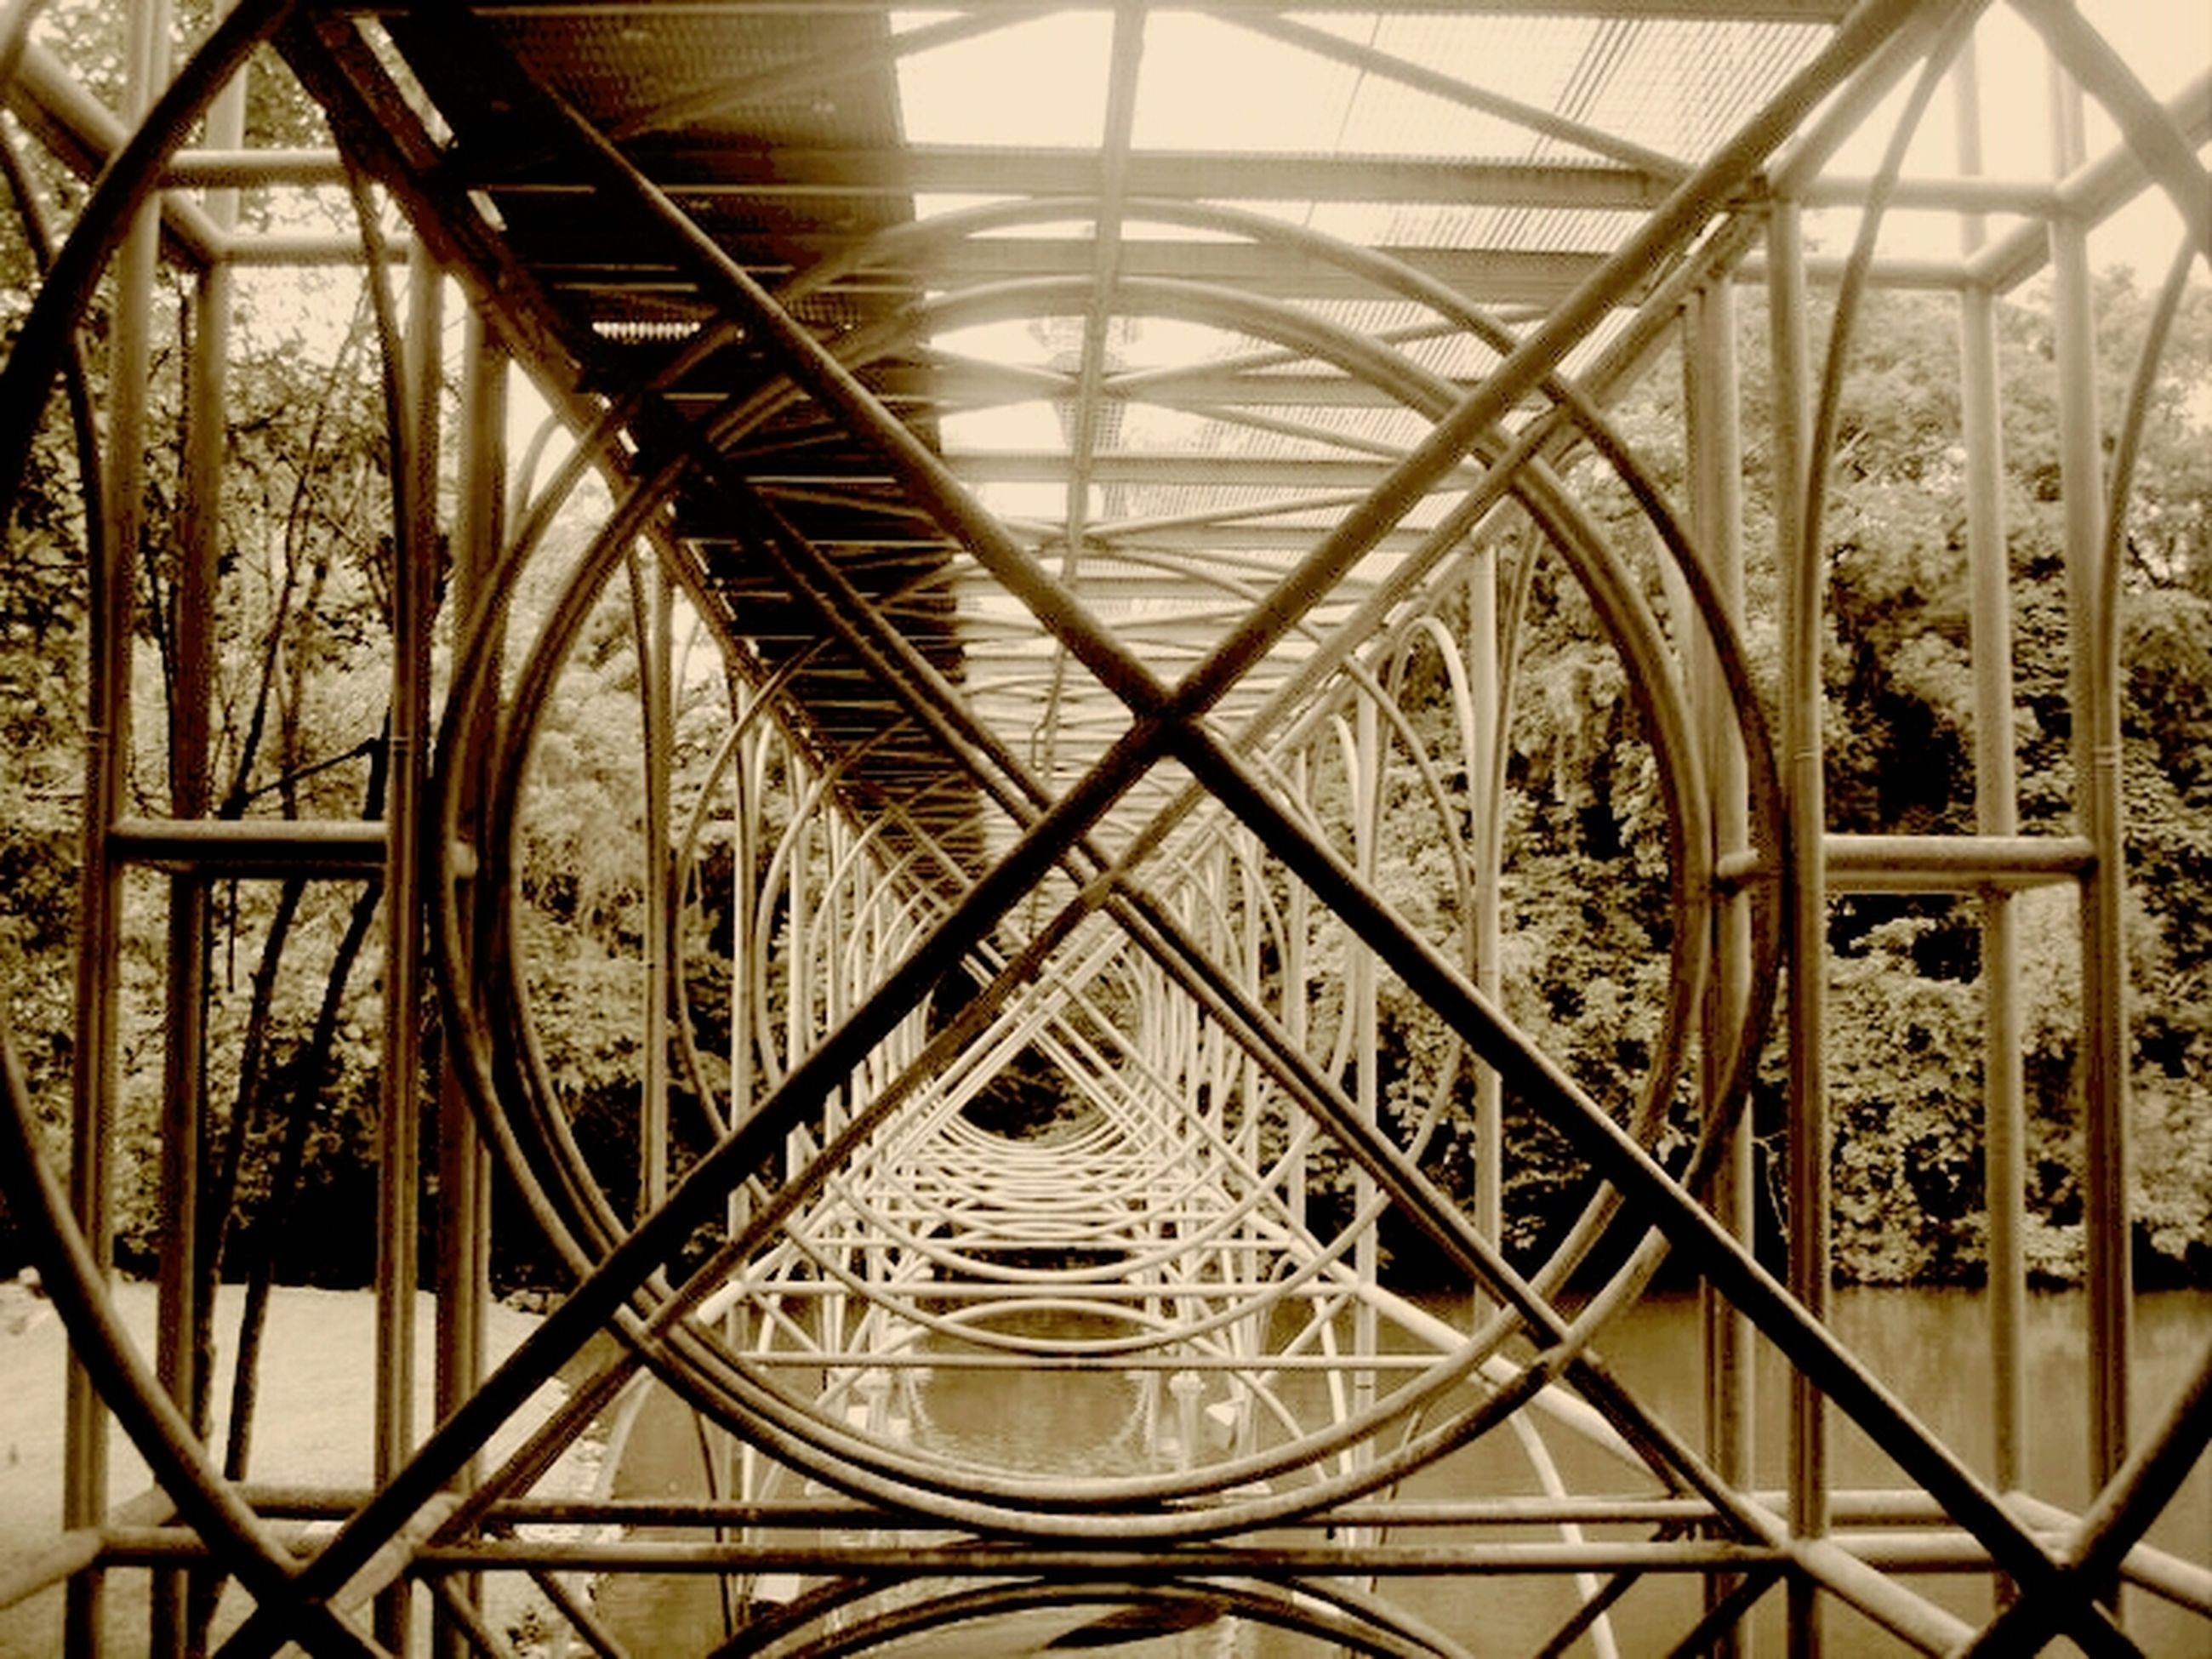 built structure, architecture, metal, indoors, metallic, bridge - man made structure, engineering, transportation, connection, low angle view, railing, pattern, no people, arch, day, diminishing perspective, travel, architectural feature, design, iron - metal